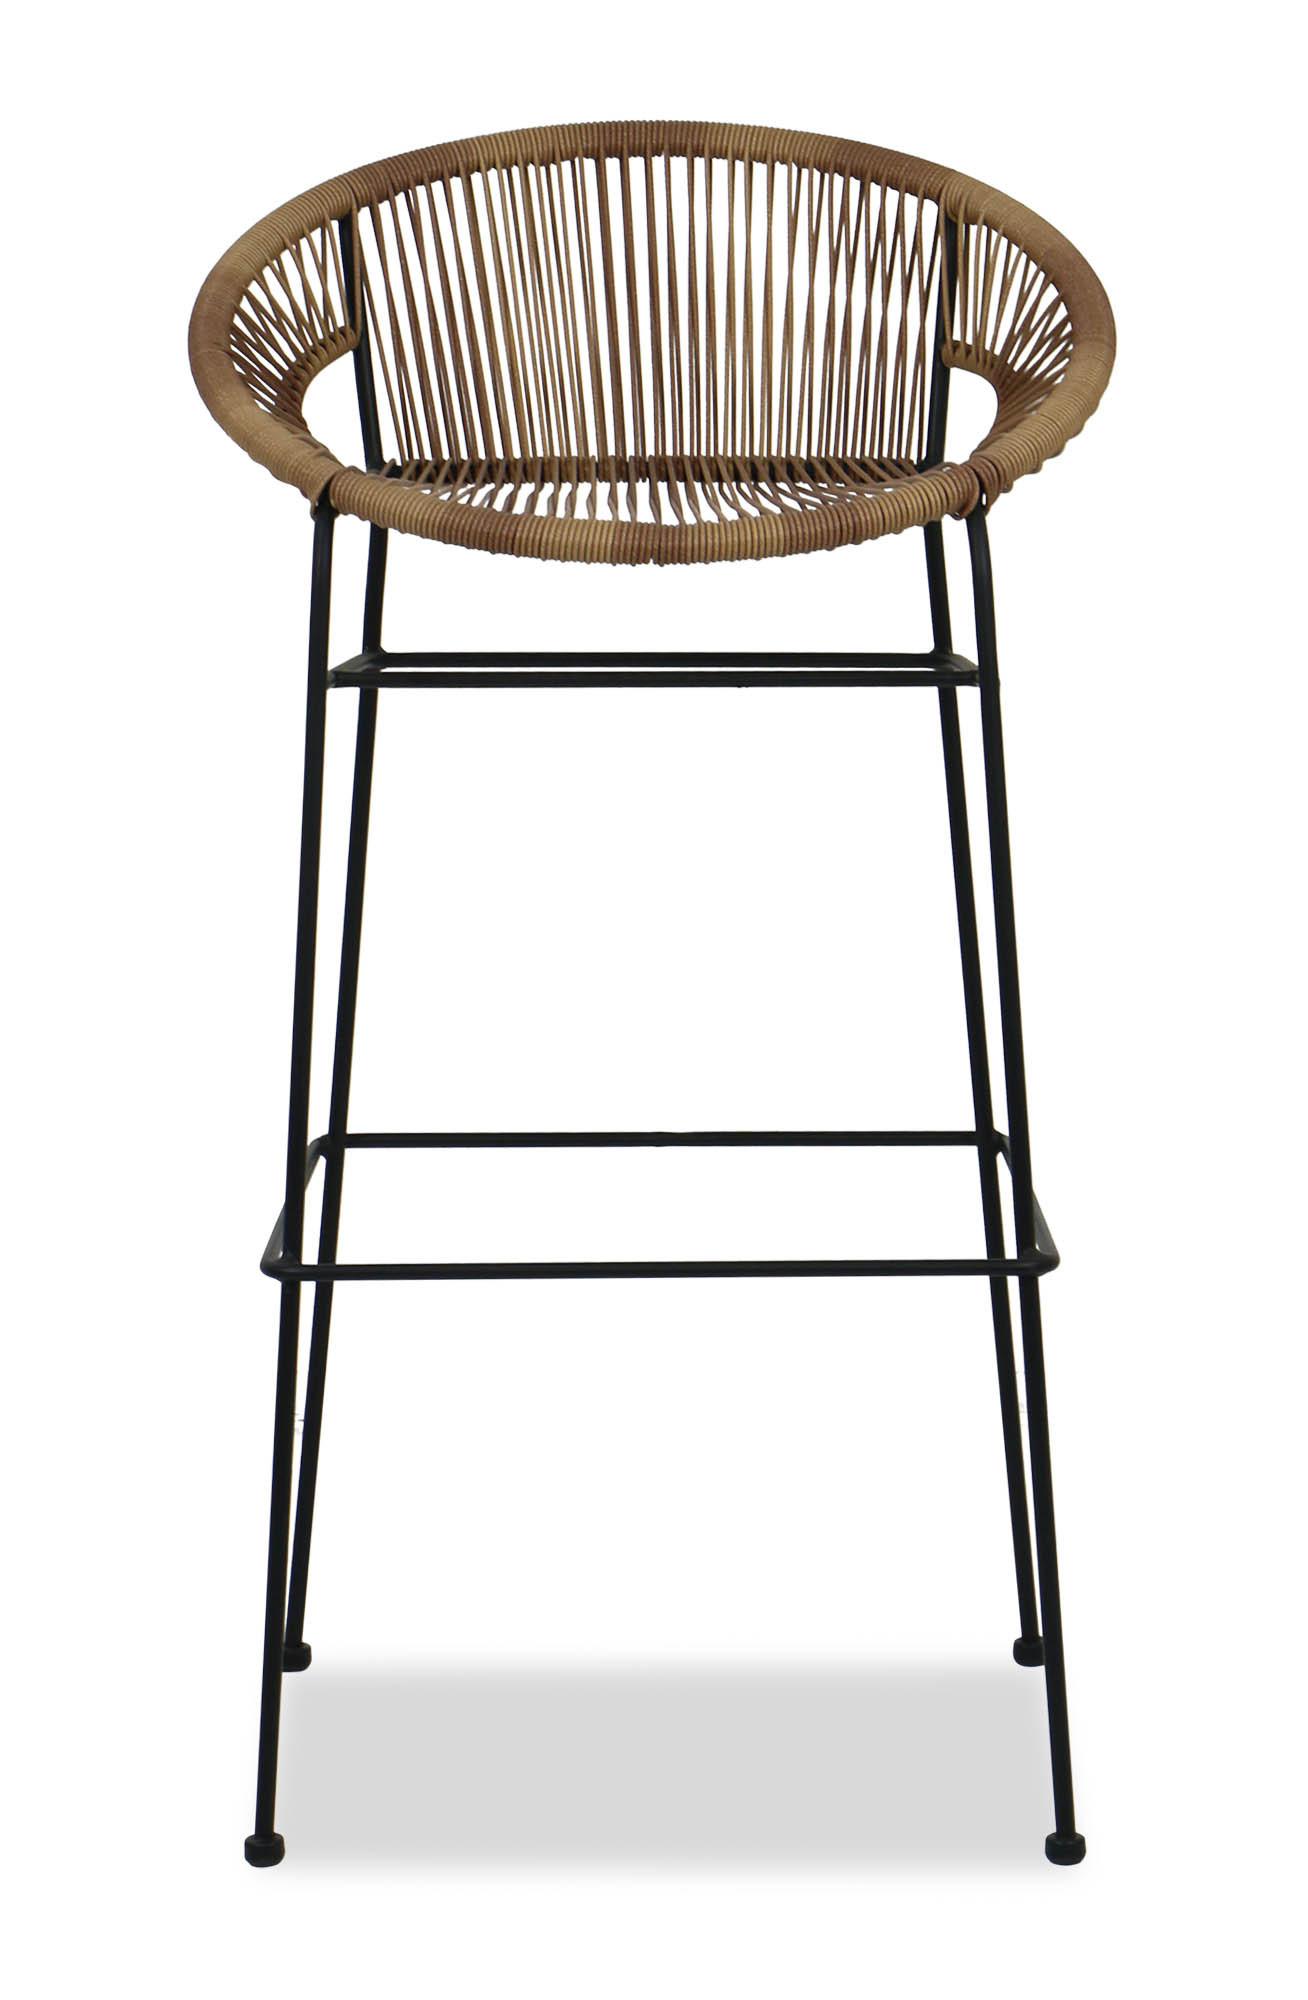 Elliot wicker bar chair brown